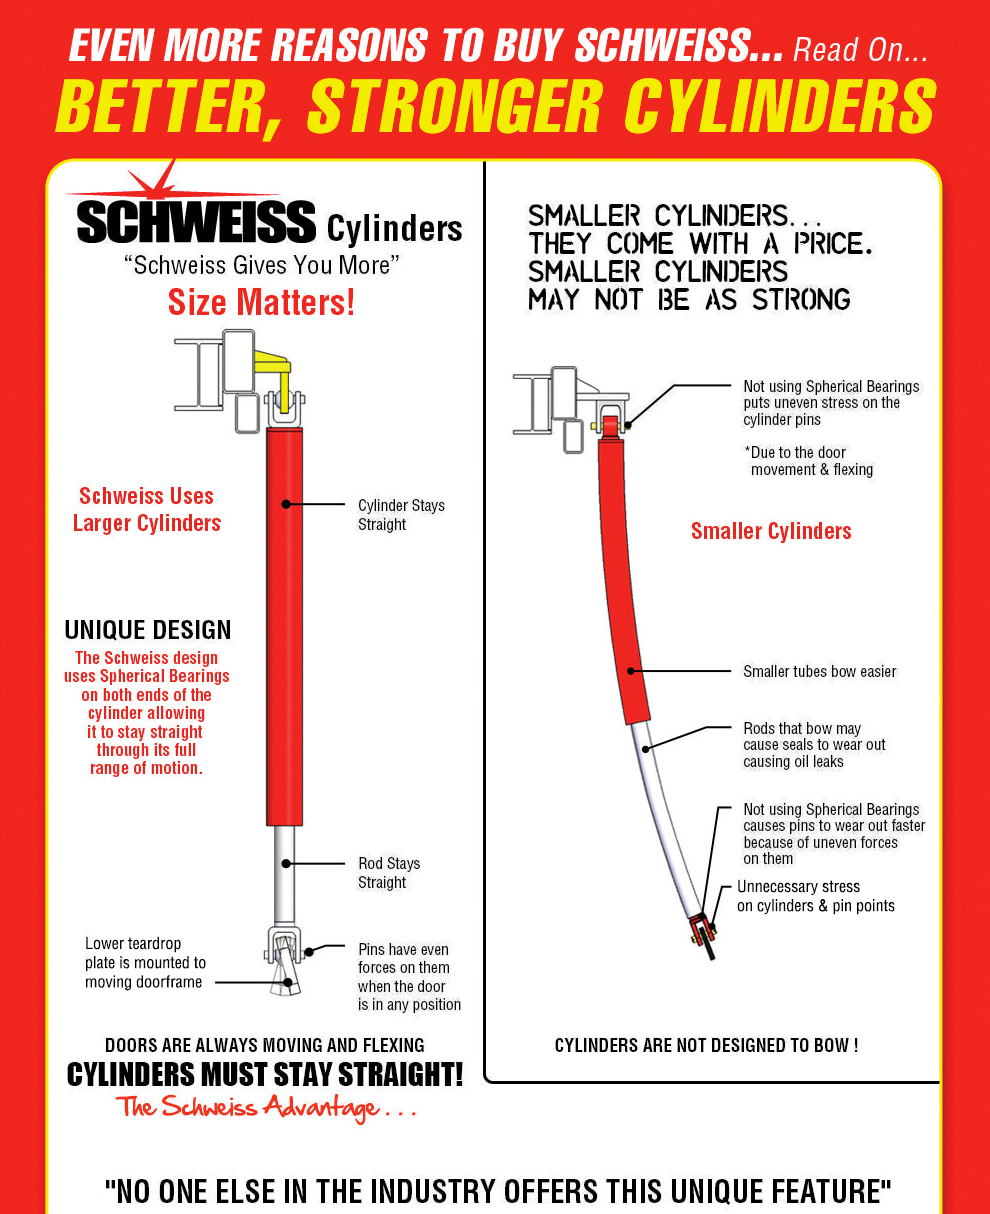 schweiss cylinder design vs other cylinders